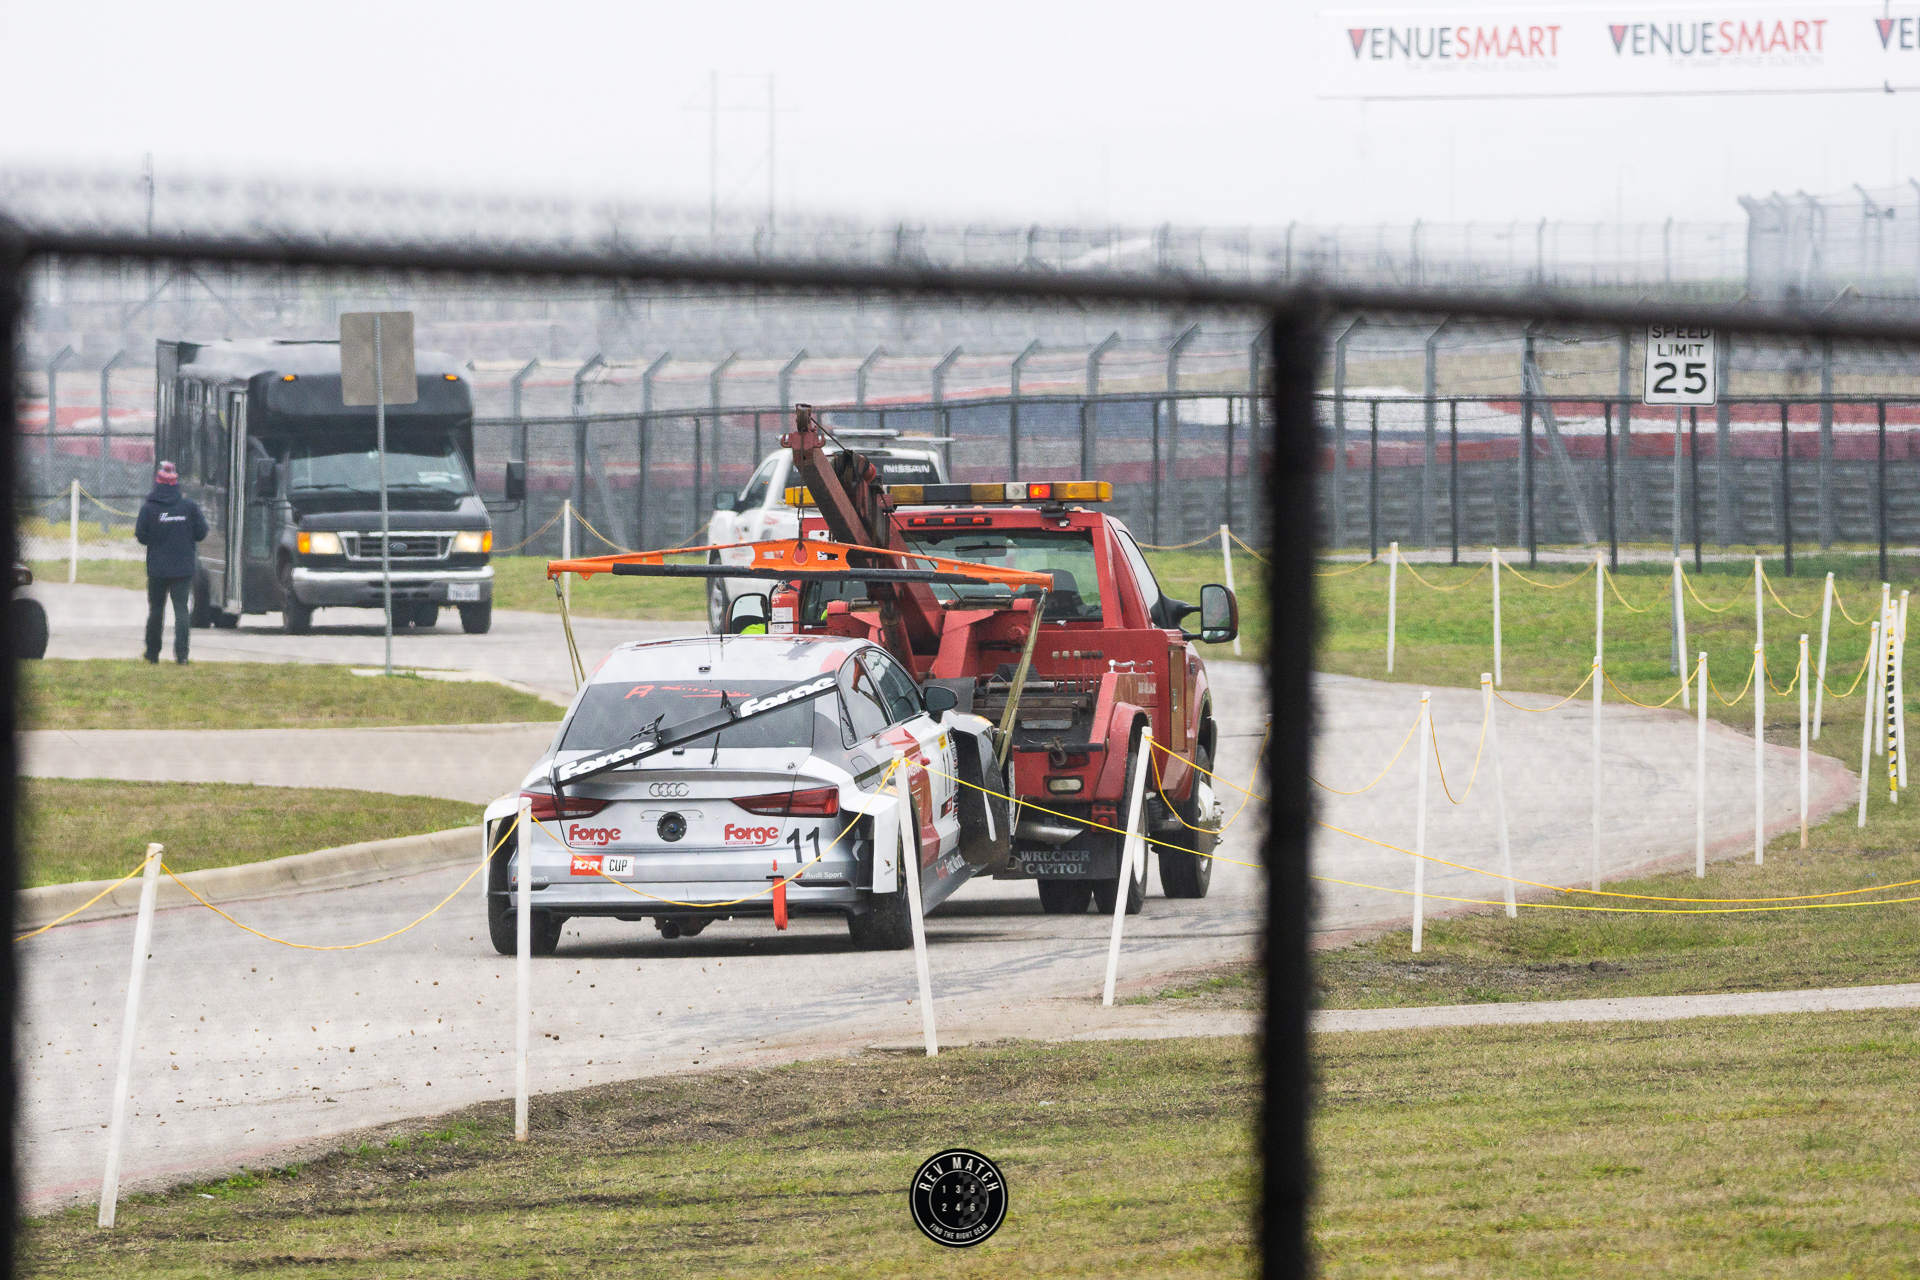 Blancpain GT COTA 2019 Rev Match Media-164.jpg